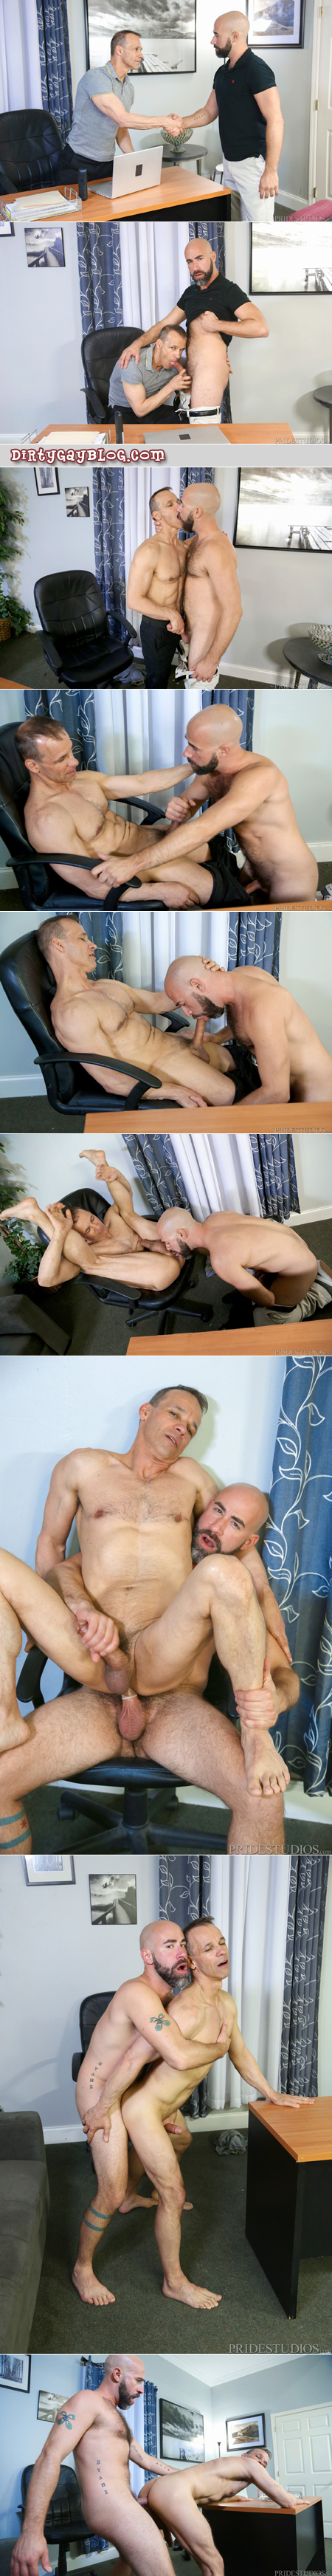 Horny Daddy keeps his job by having gay sex with his boss.